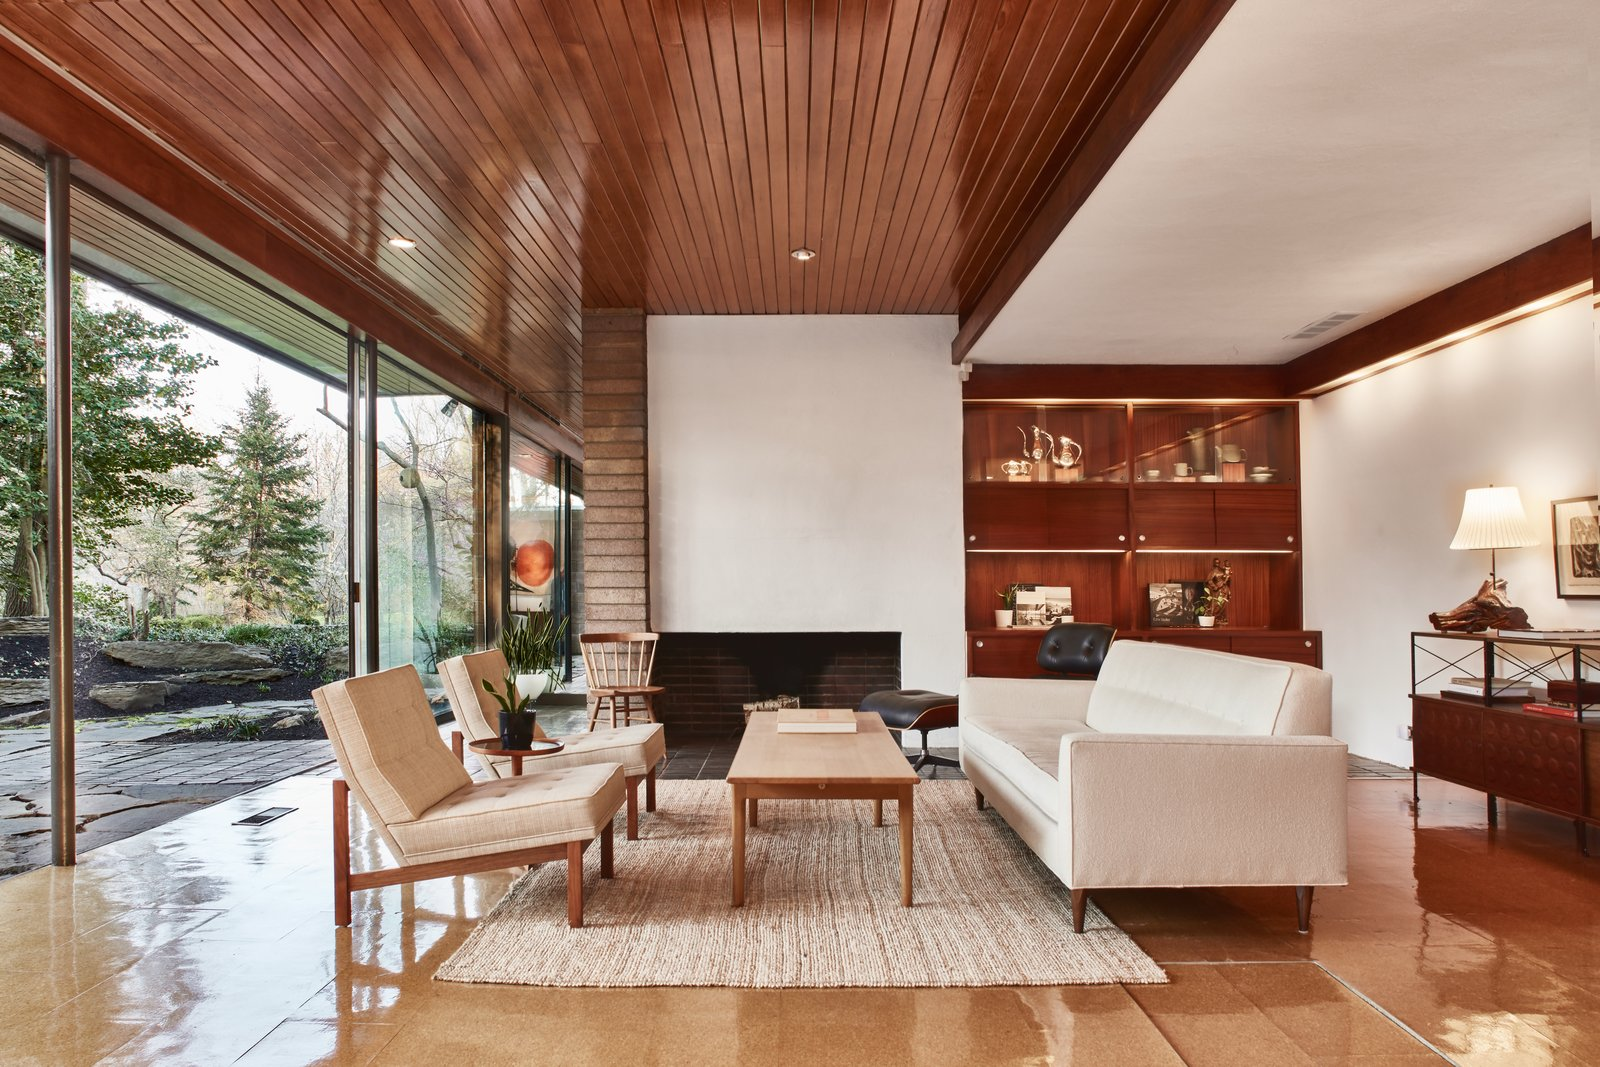 Tagged: Living Room, Chair, Sofa, Recessed Lighting, and Standard Layout Fireplace.  Photo 2 of 13 in The Stunningly Restored Hassrick Residence by Richard Neutra Hits the Market at $2.2M